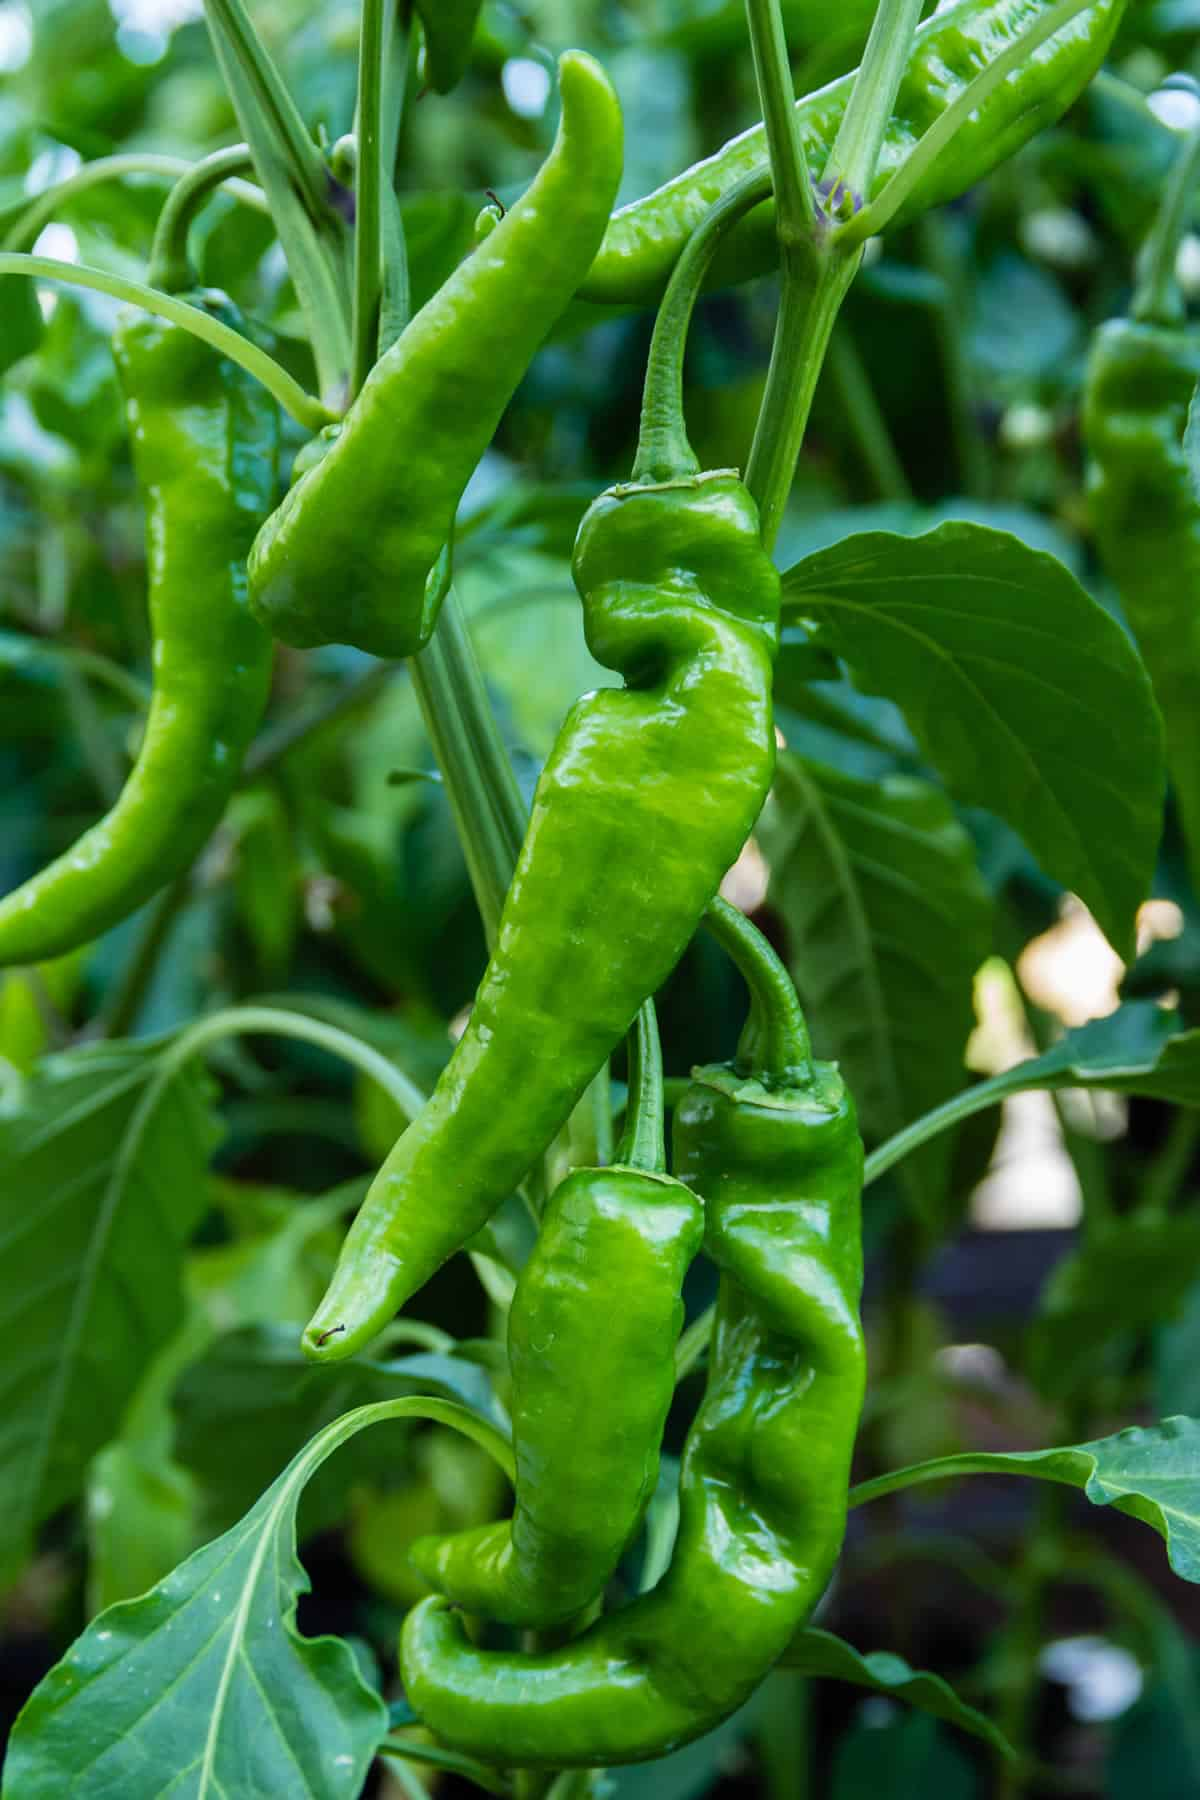 Anaheim Pepper: A Popular Mild California Chili